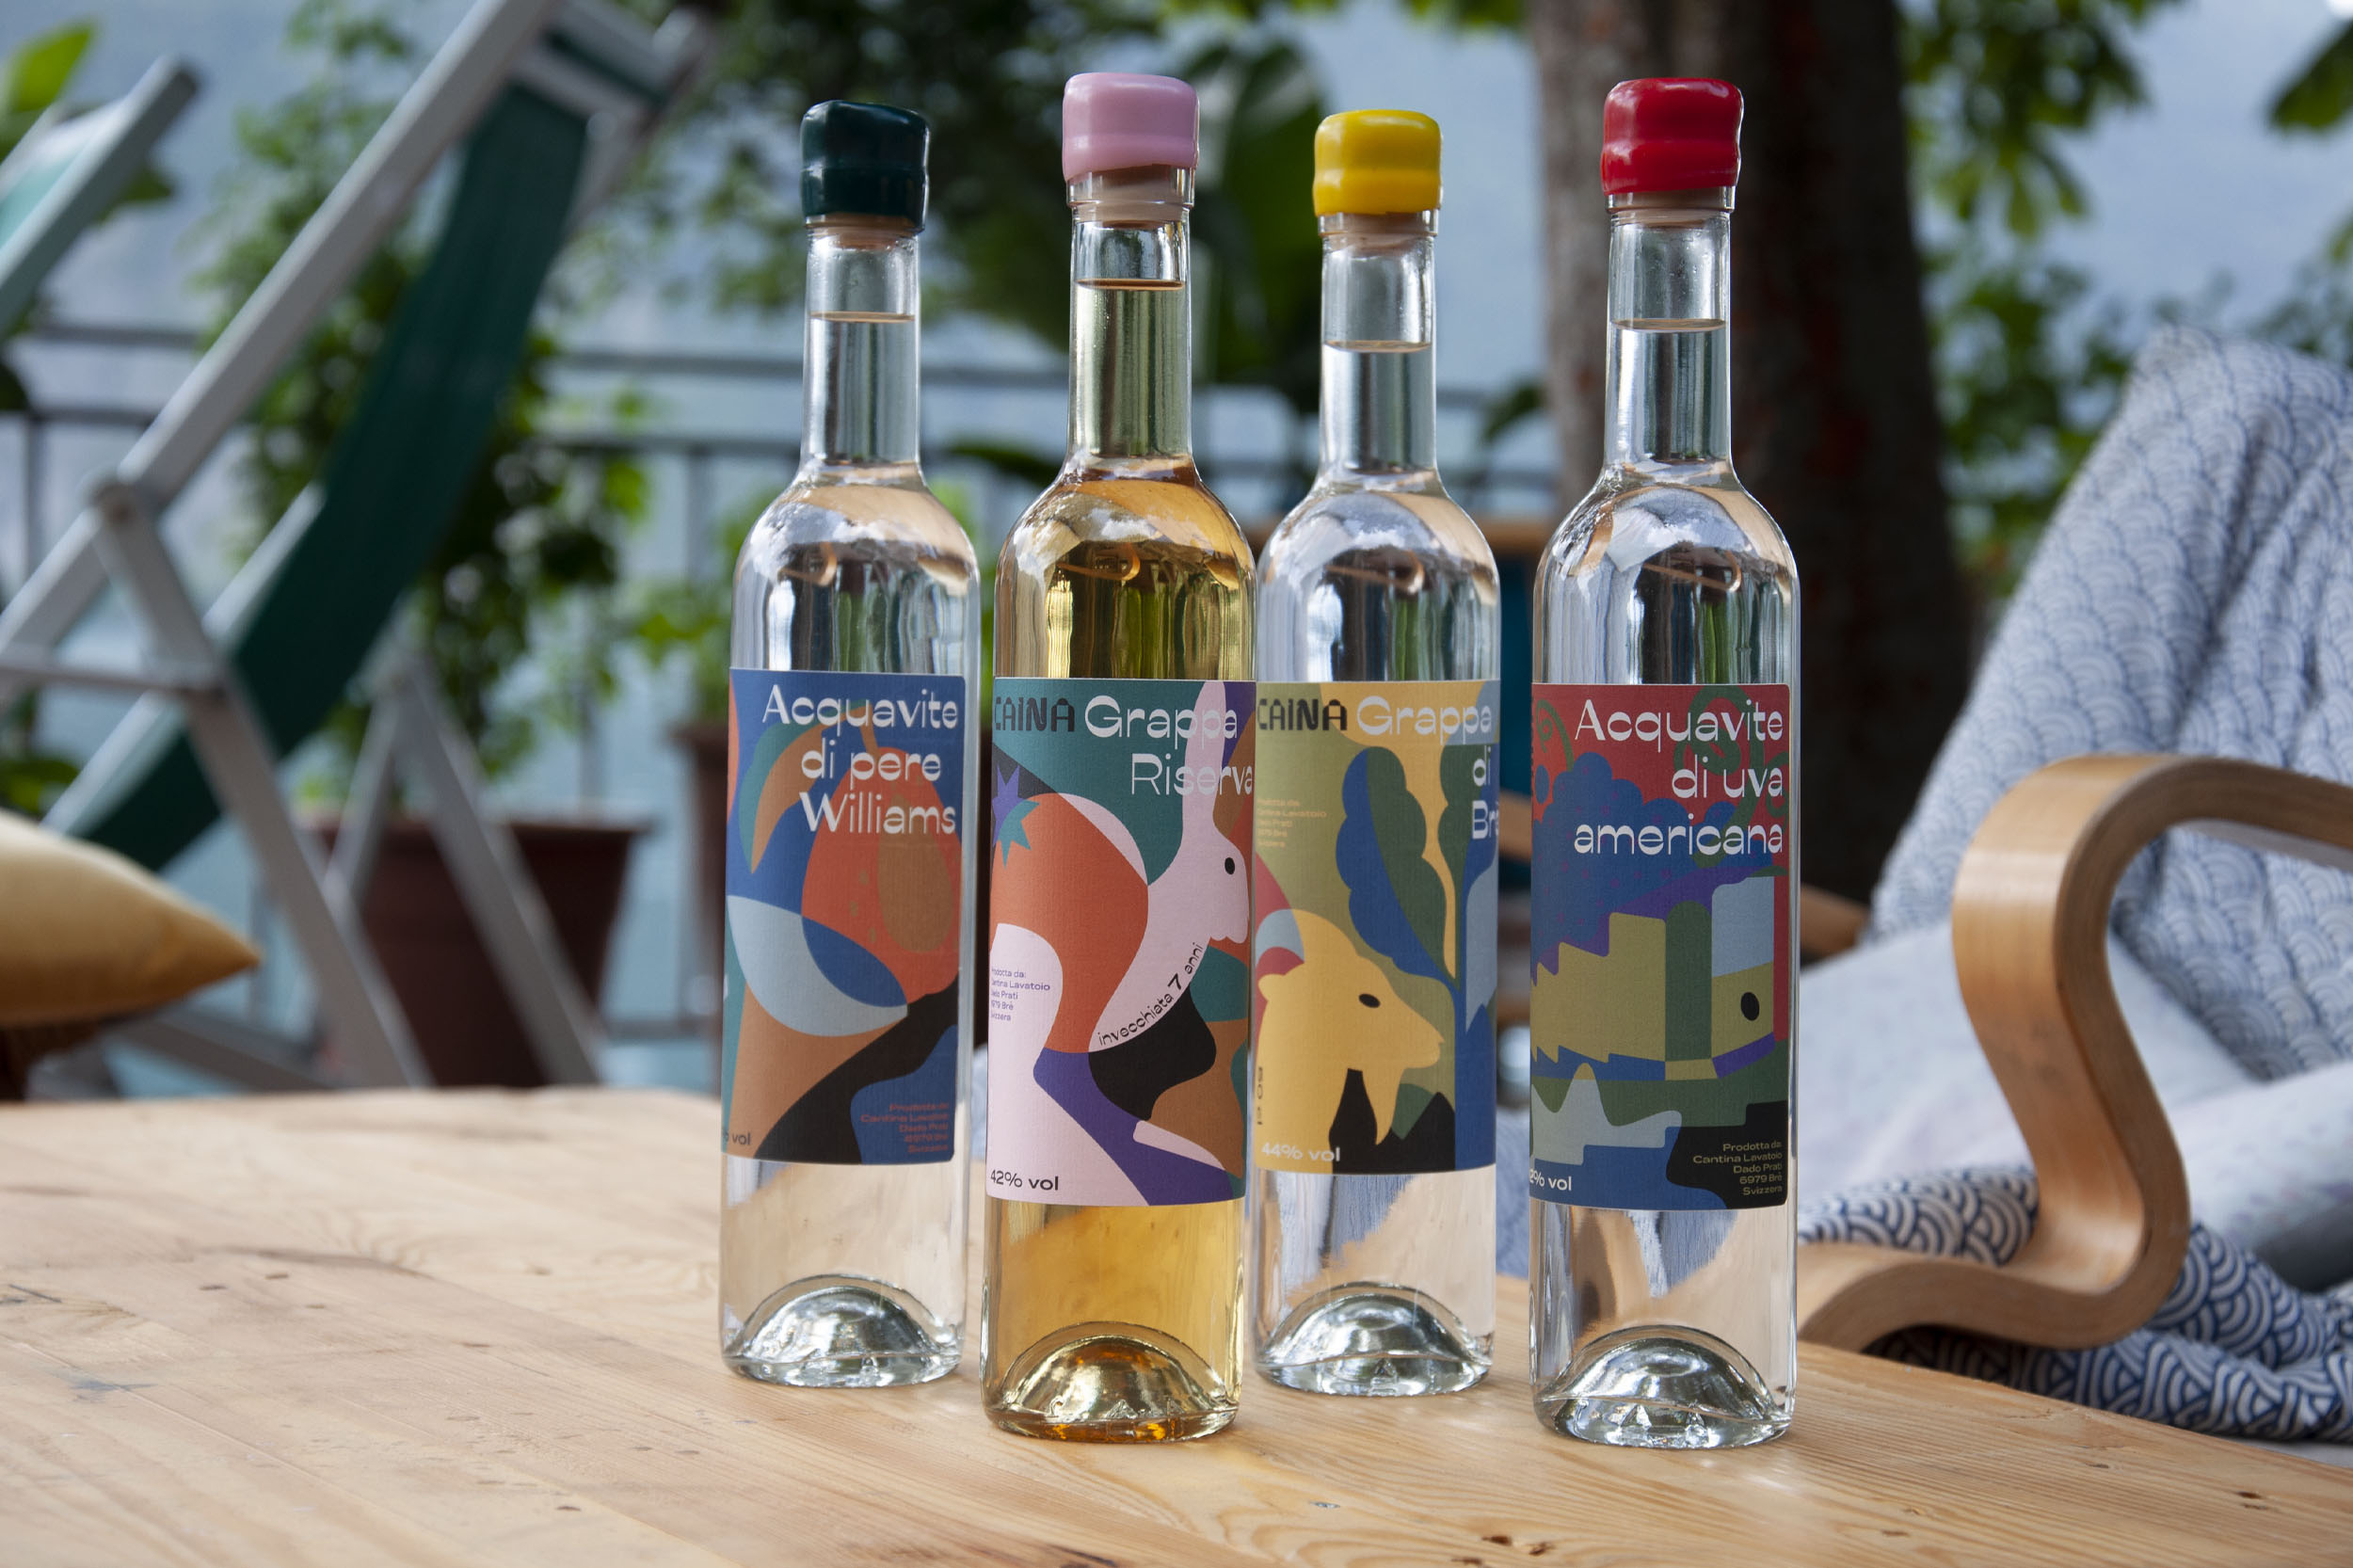 ByVolume Develop Brand Identity and Packaging Design for Caina Distillery's New Products for the Swiss Market